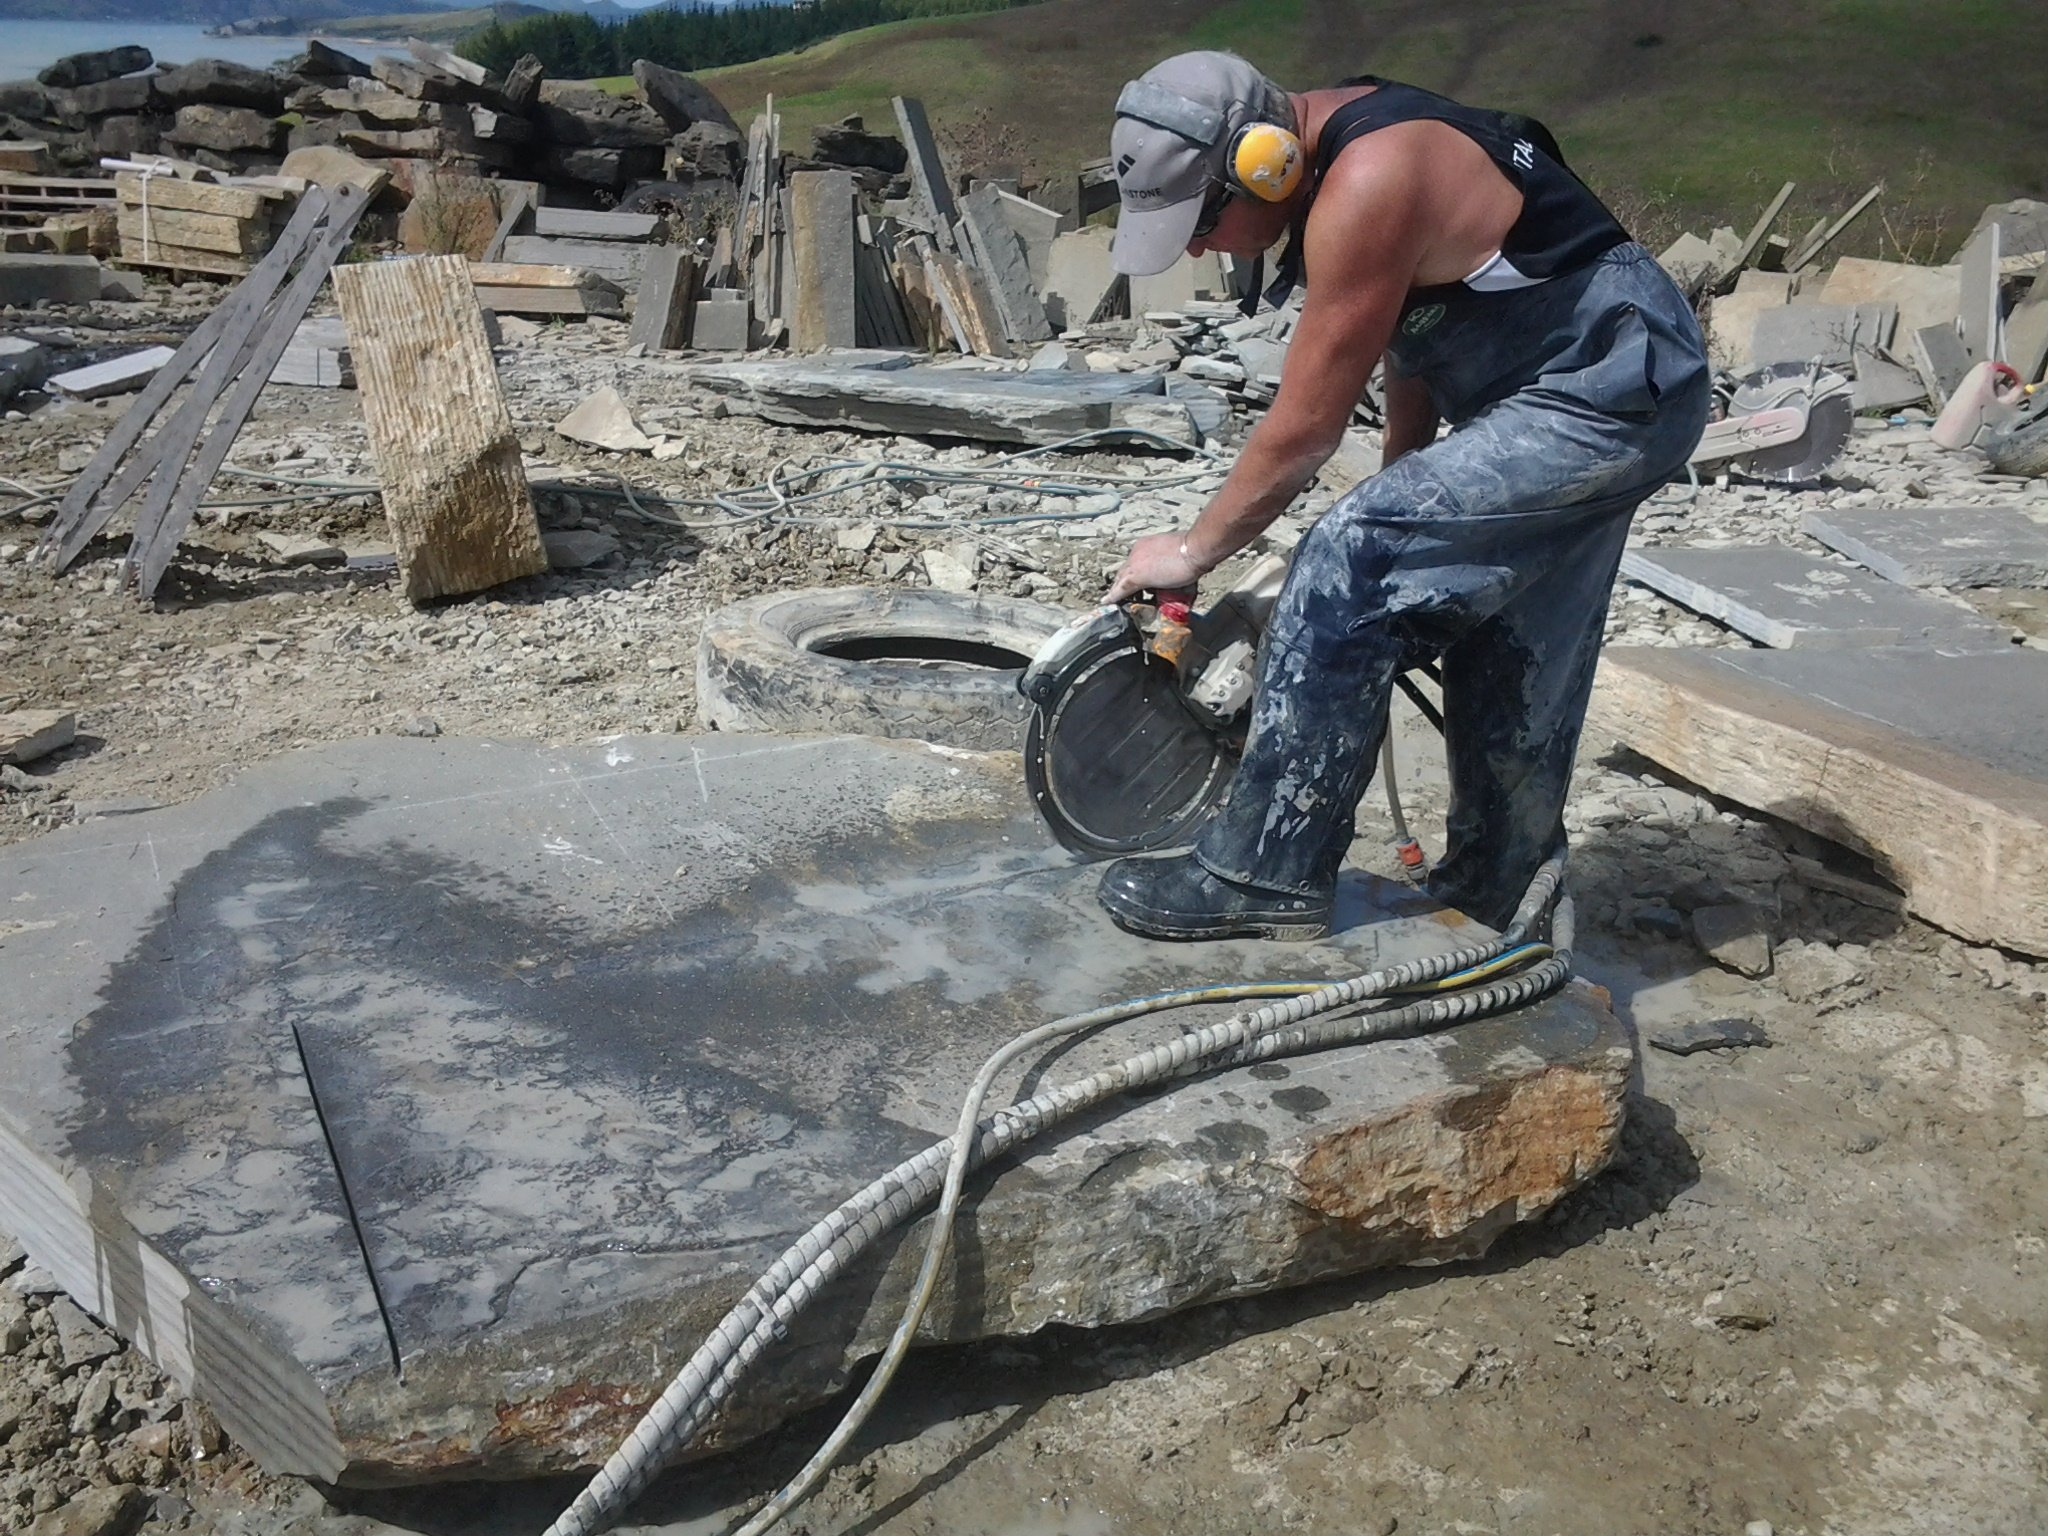 j and j concrete cutting naples - photo#2